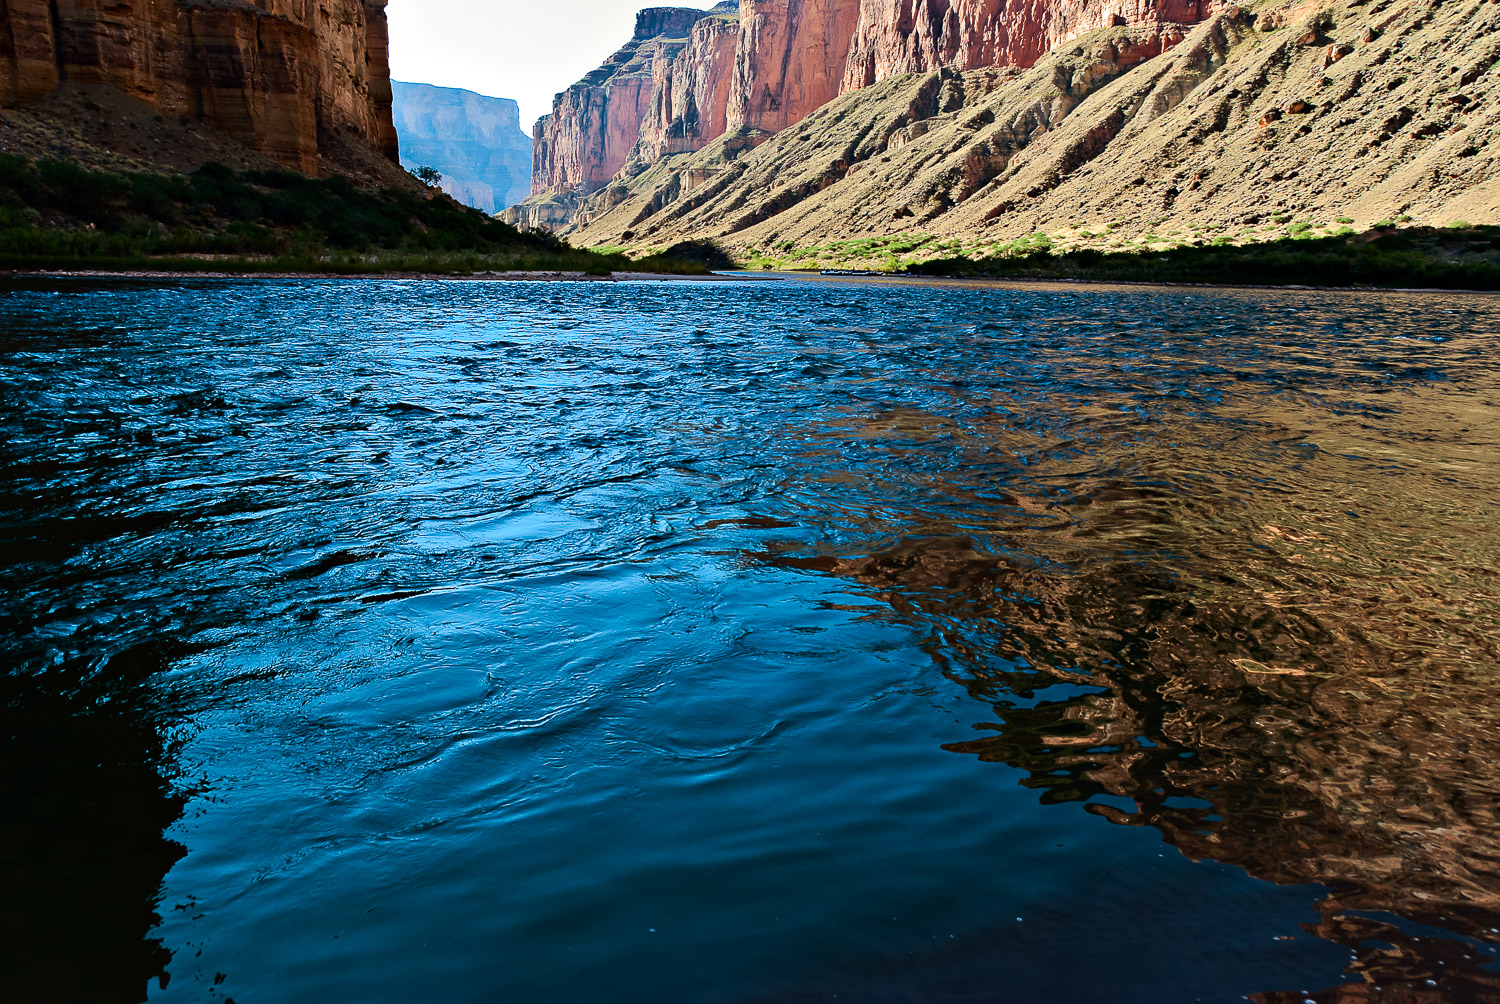 Colorado River in Marble Canyon |Mark LIndsay